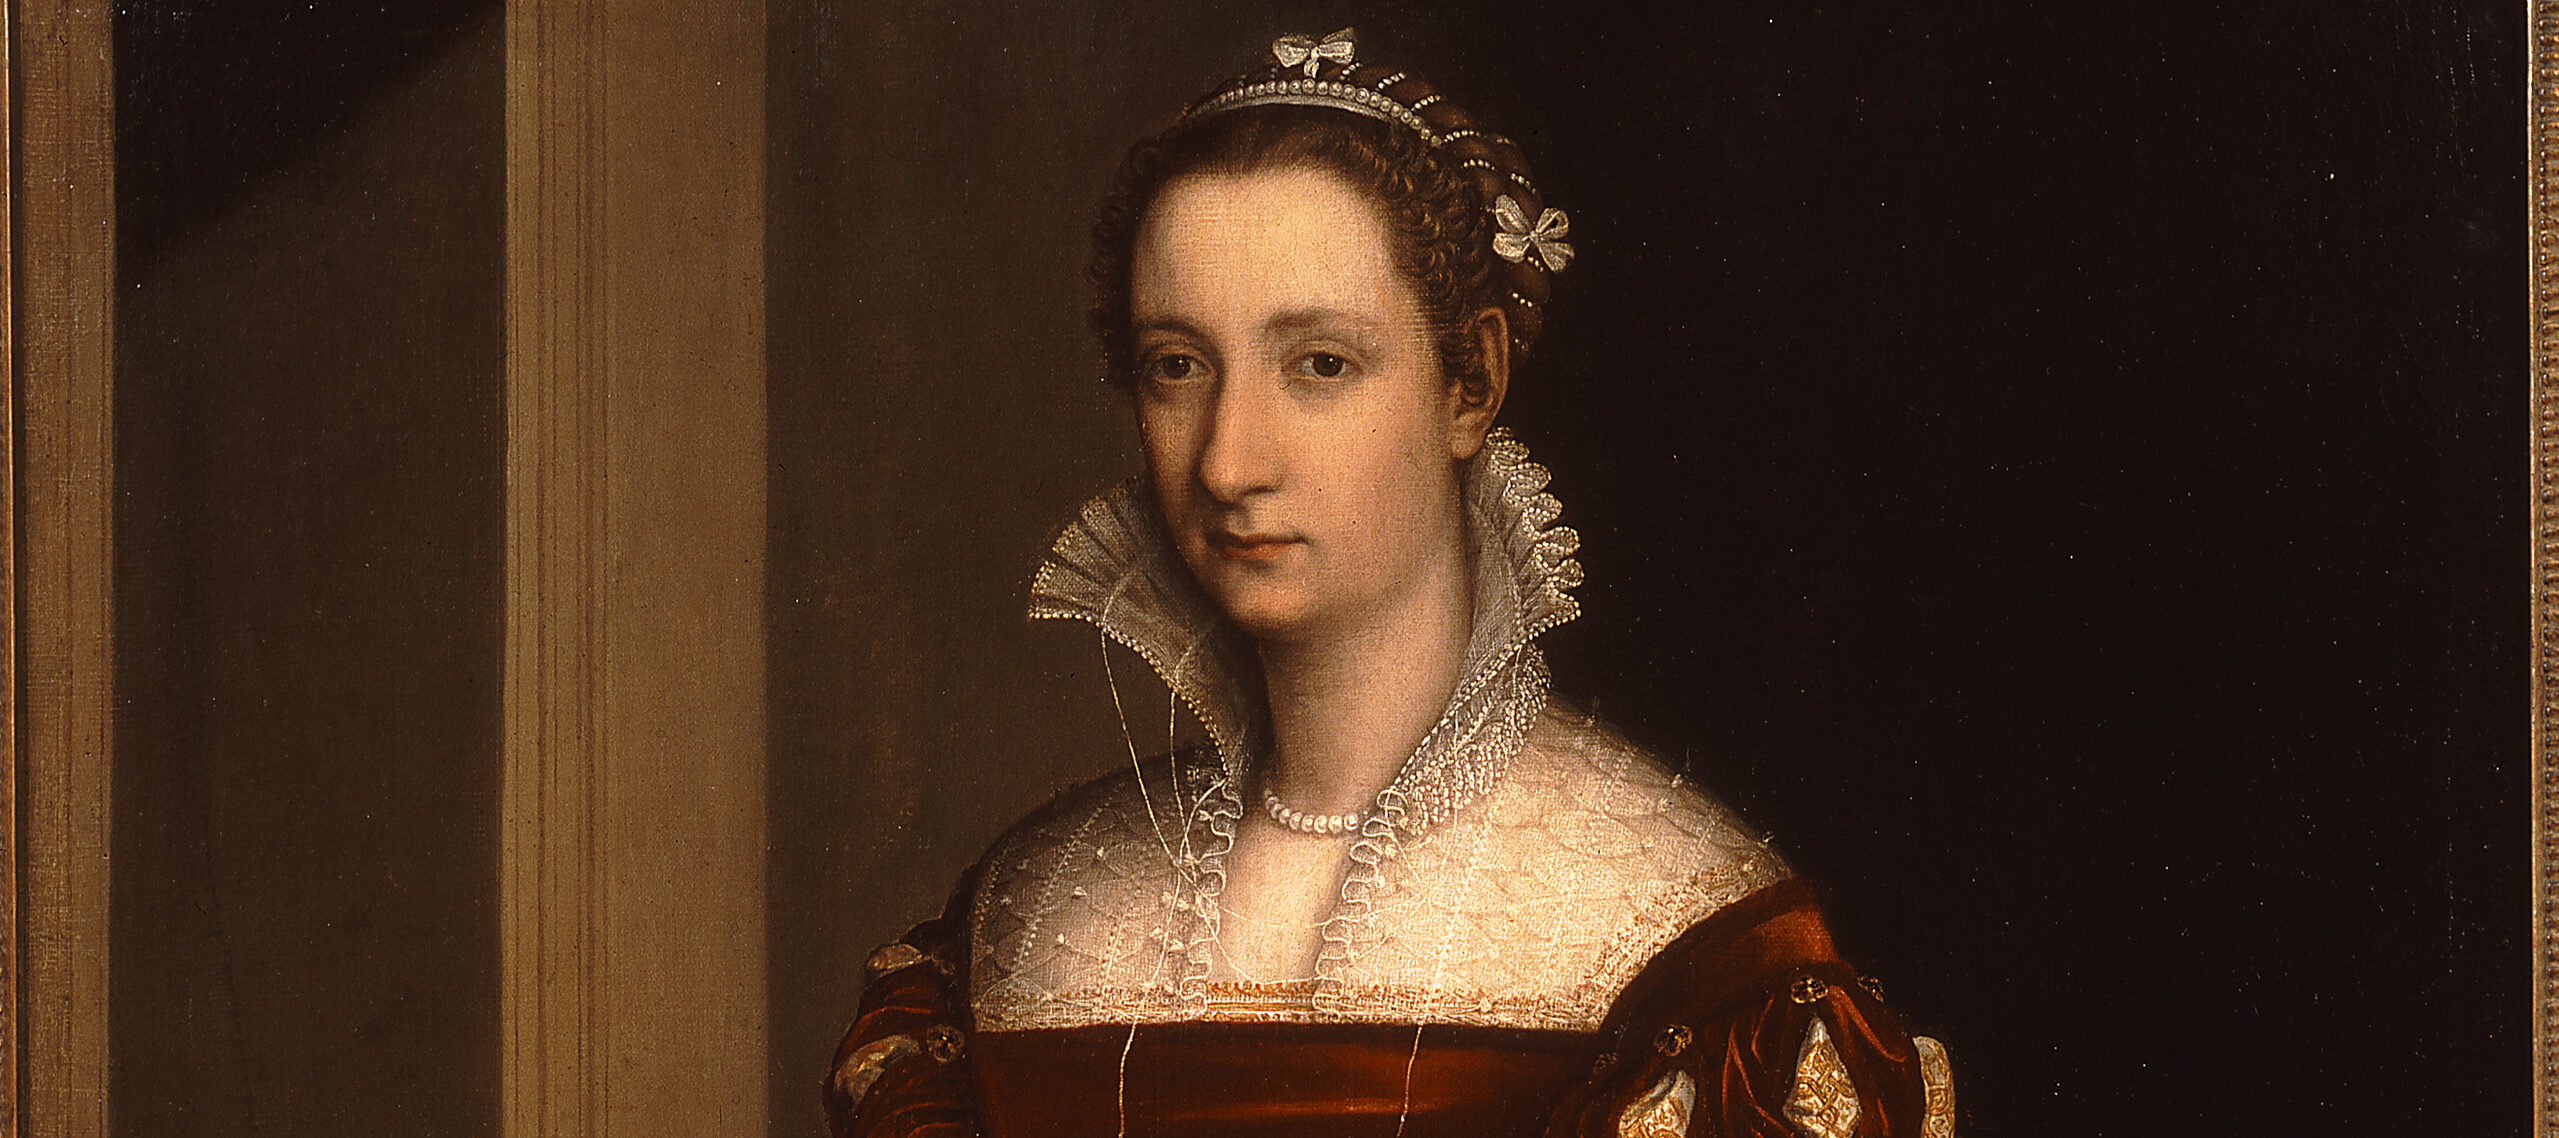 Three quarter length painting of a woman standing against a dark background. She is wearing a sumptuous red Renaissance-style dress with a high lace collar. Standing next to her at bottom left is a child holding a small spaniel.